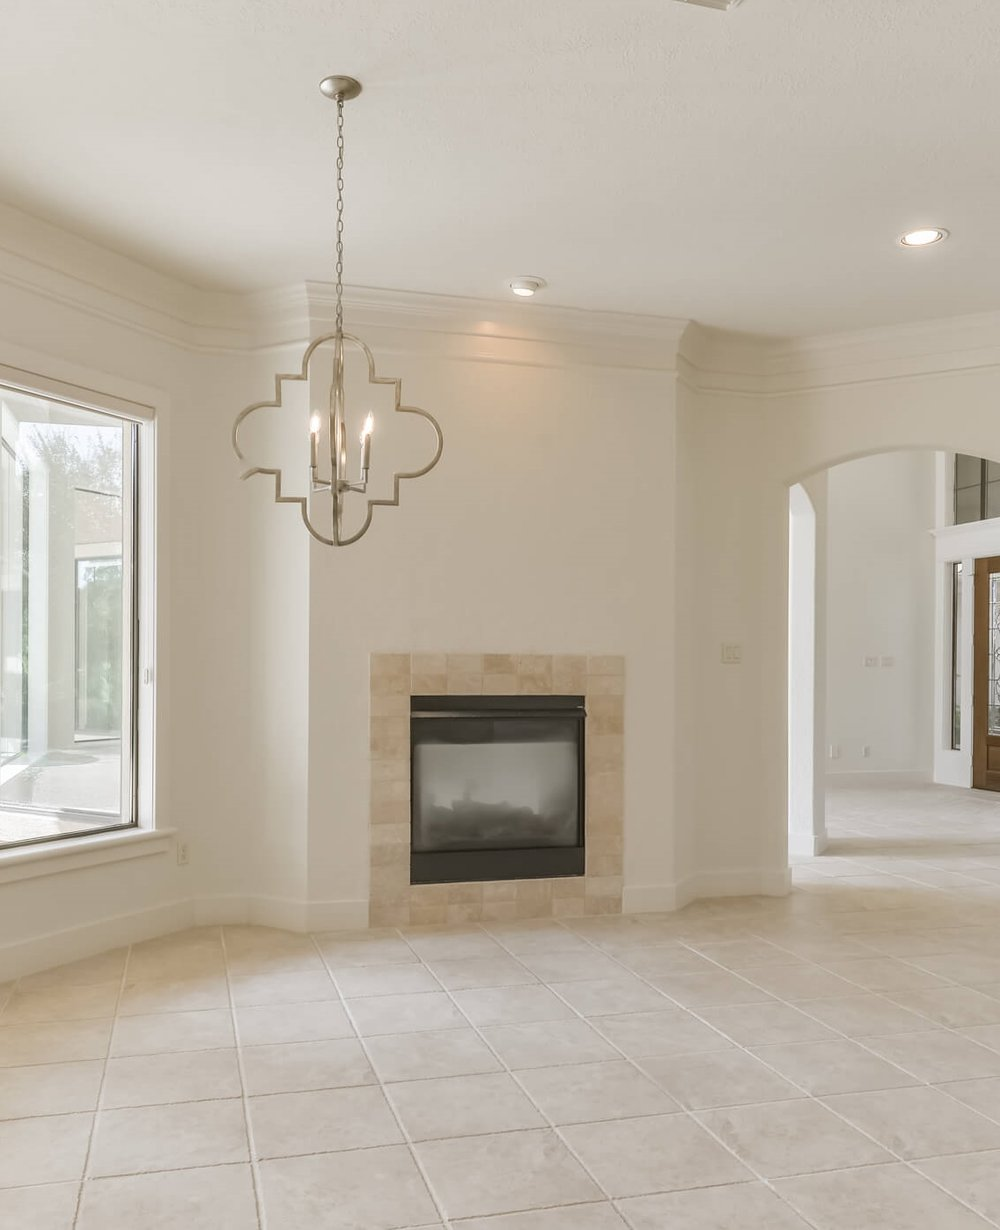 AFTER - New lighting and a less fussy tile surround helped update this breakfast room area just opposite the kitchen. Designer: Carla Aston | #breakfastroom #fireplace #quatrefoil